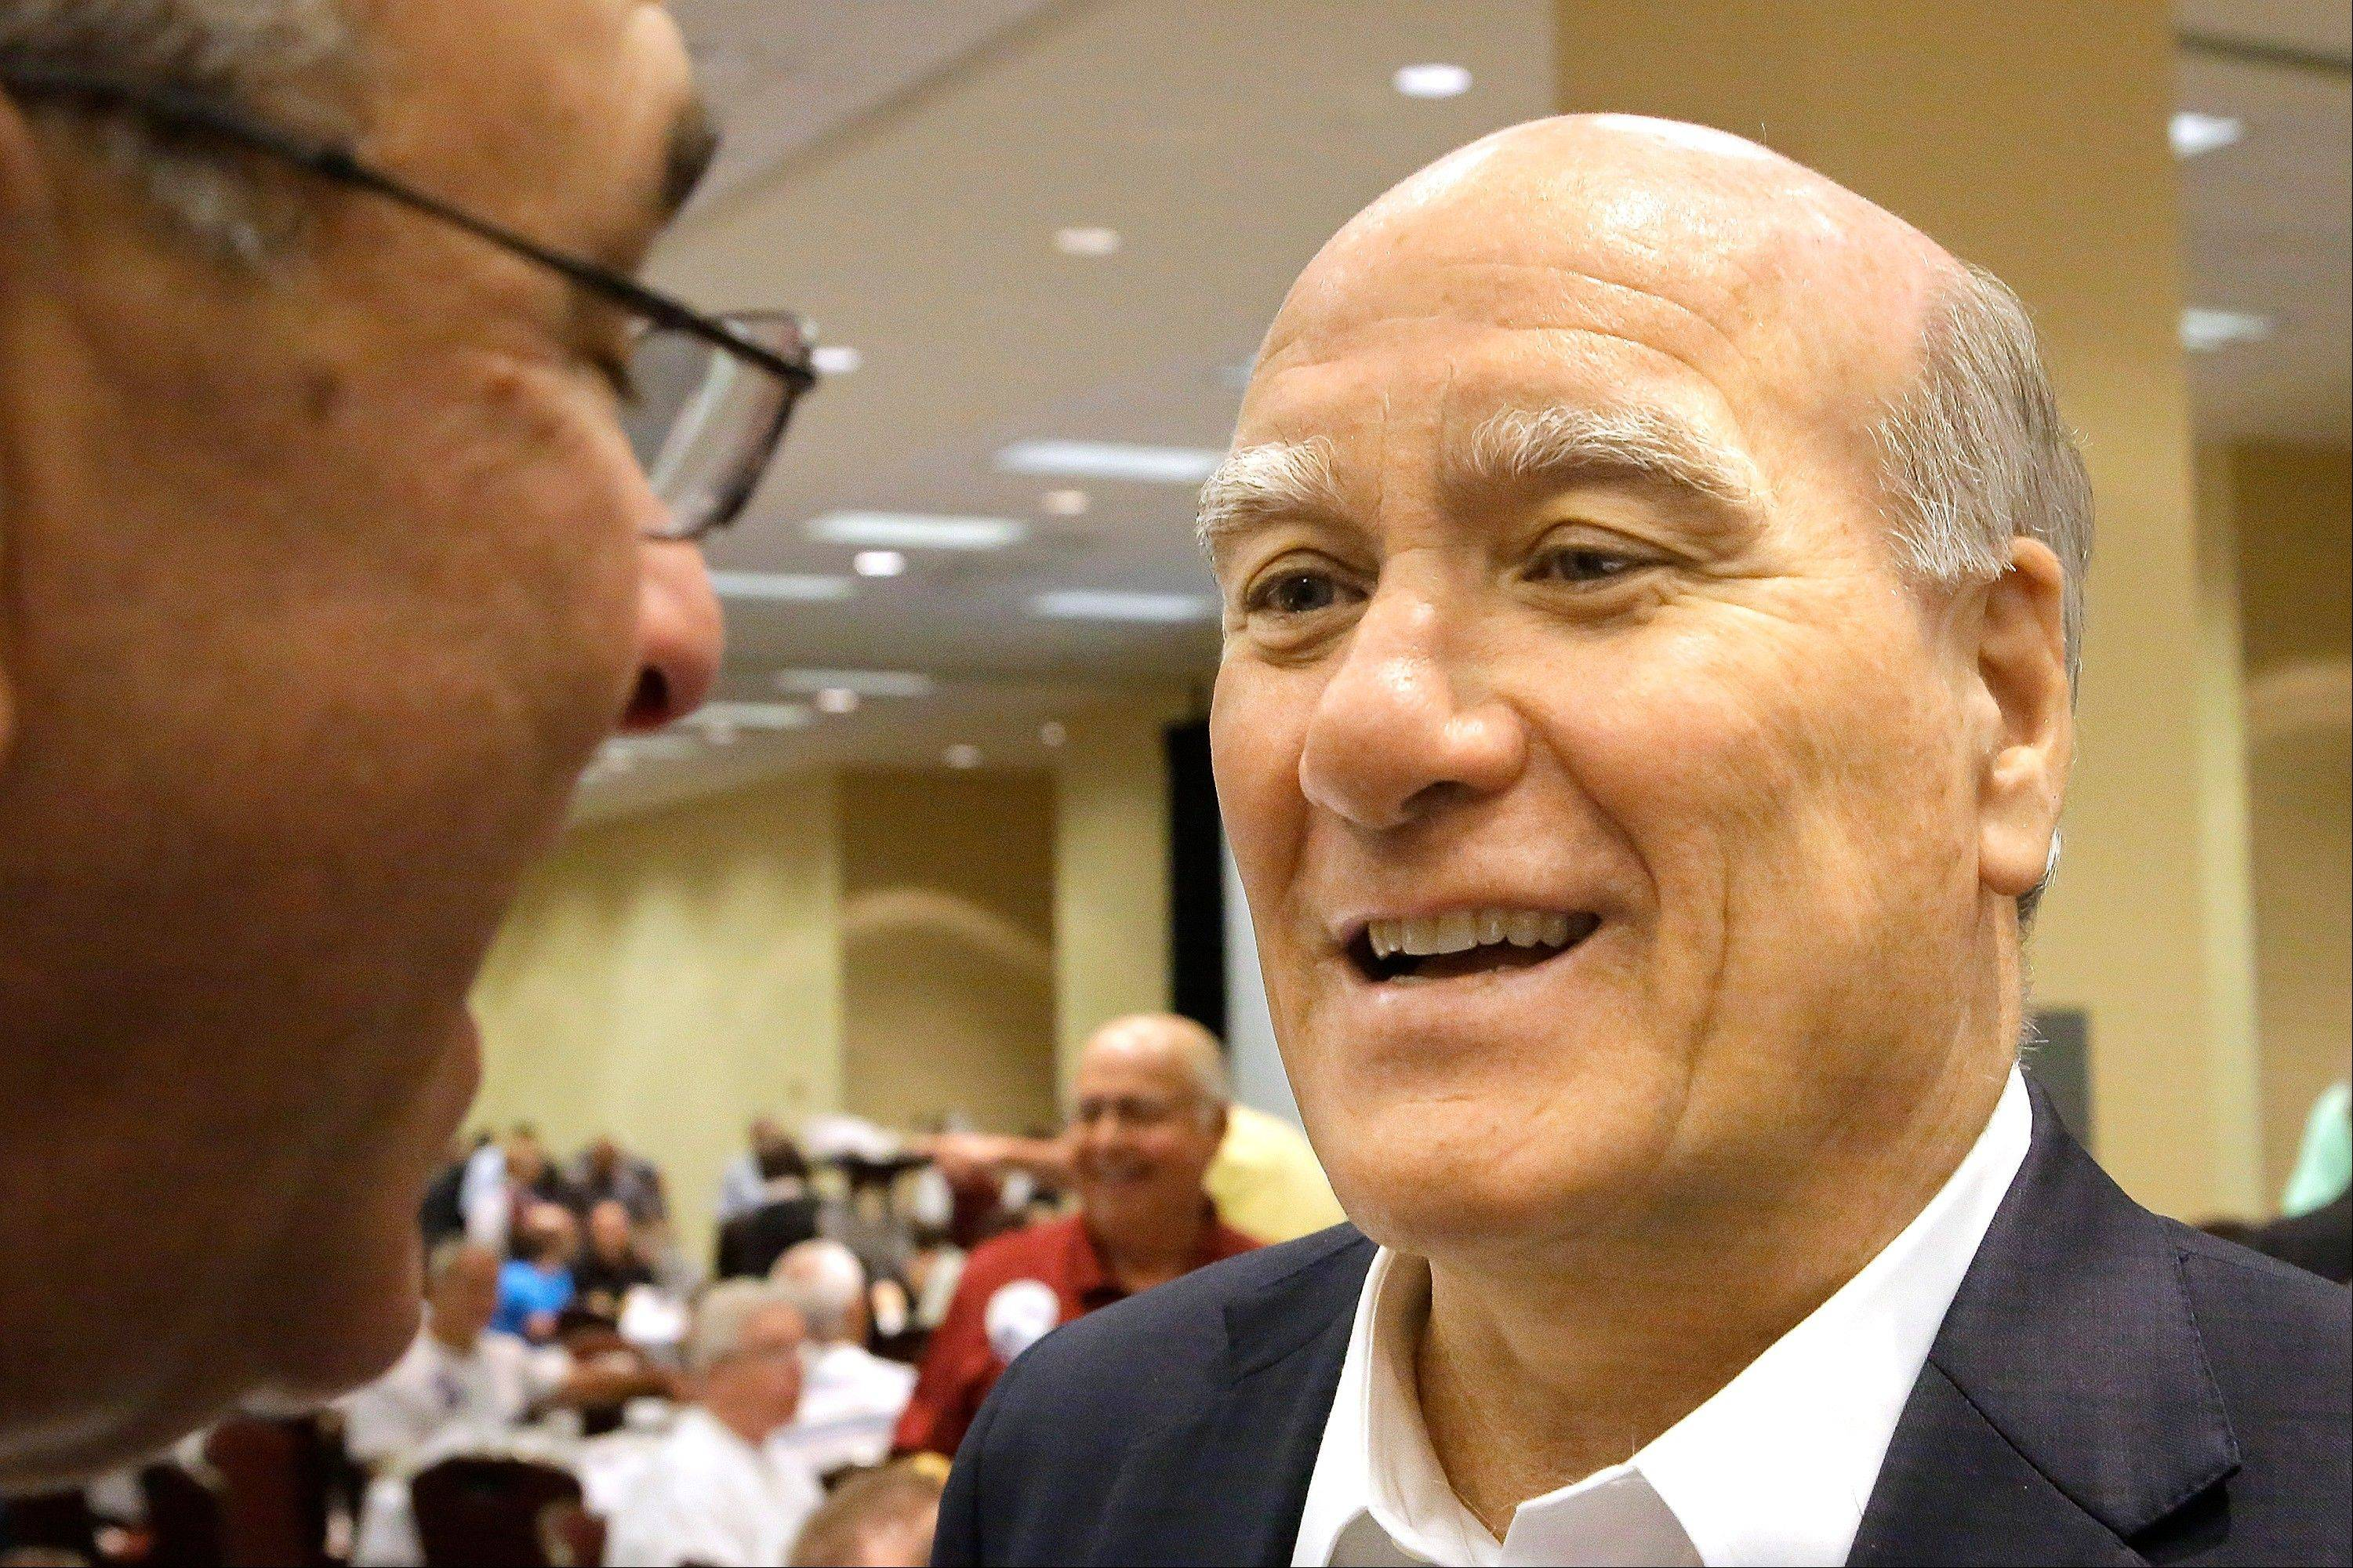 Bill Daley of Chicago, right, speaks with state Rep. Louis Lang of Skokie and other convention members during the Illinois Democratic County Chairmen's Association Governors Day Convention on Wednesday in Springfield. Daley says he's a gubernatorial candidate who won't divide the party.